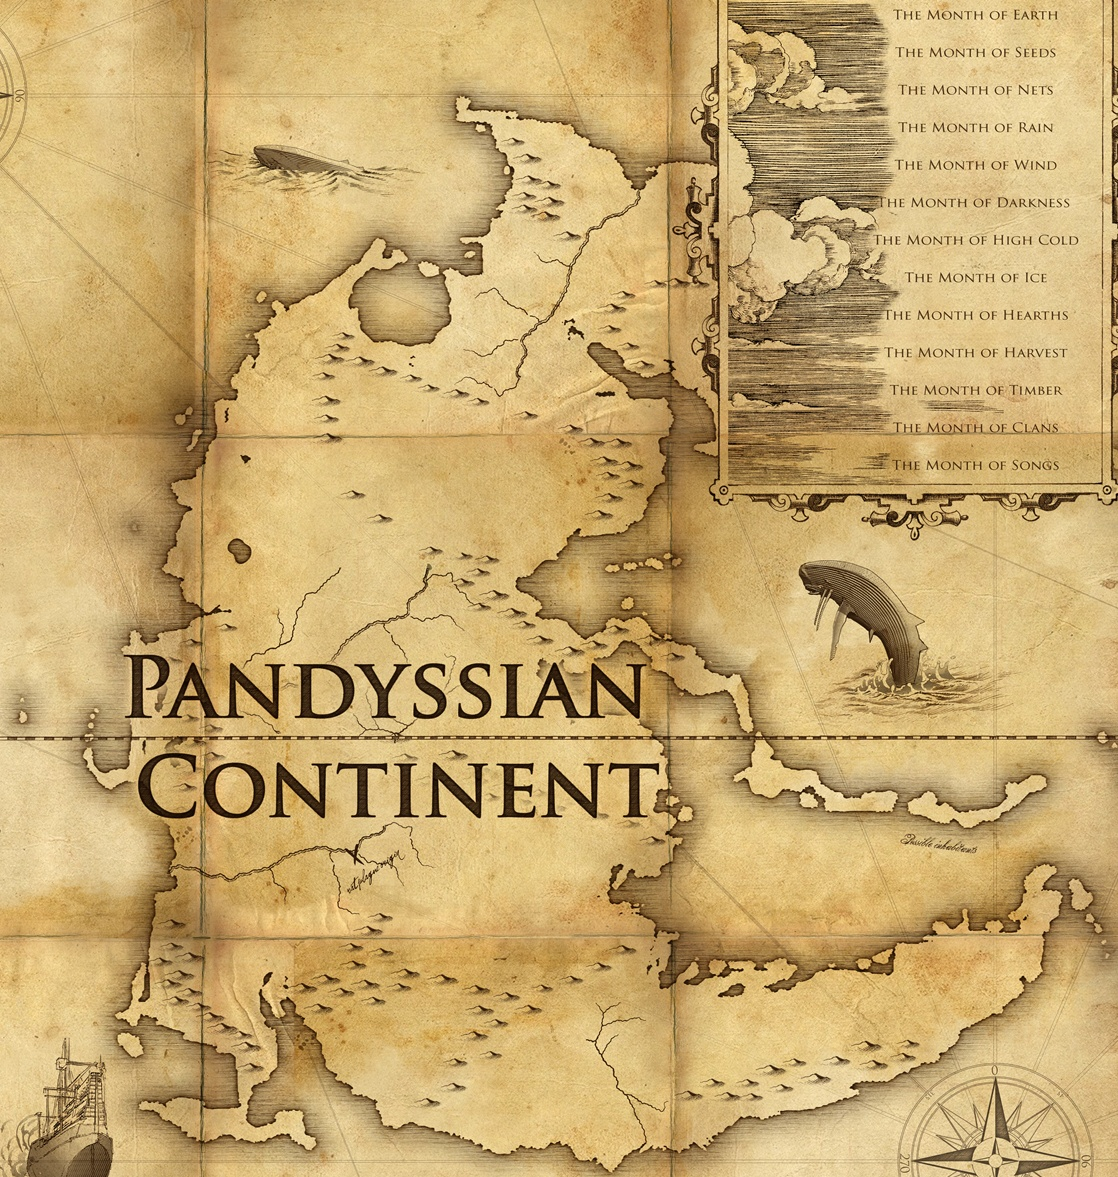 Pandyssian Continent Dishonored Wiki Fandom Powered By Wikia